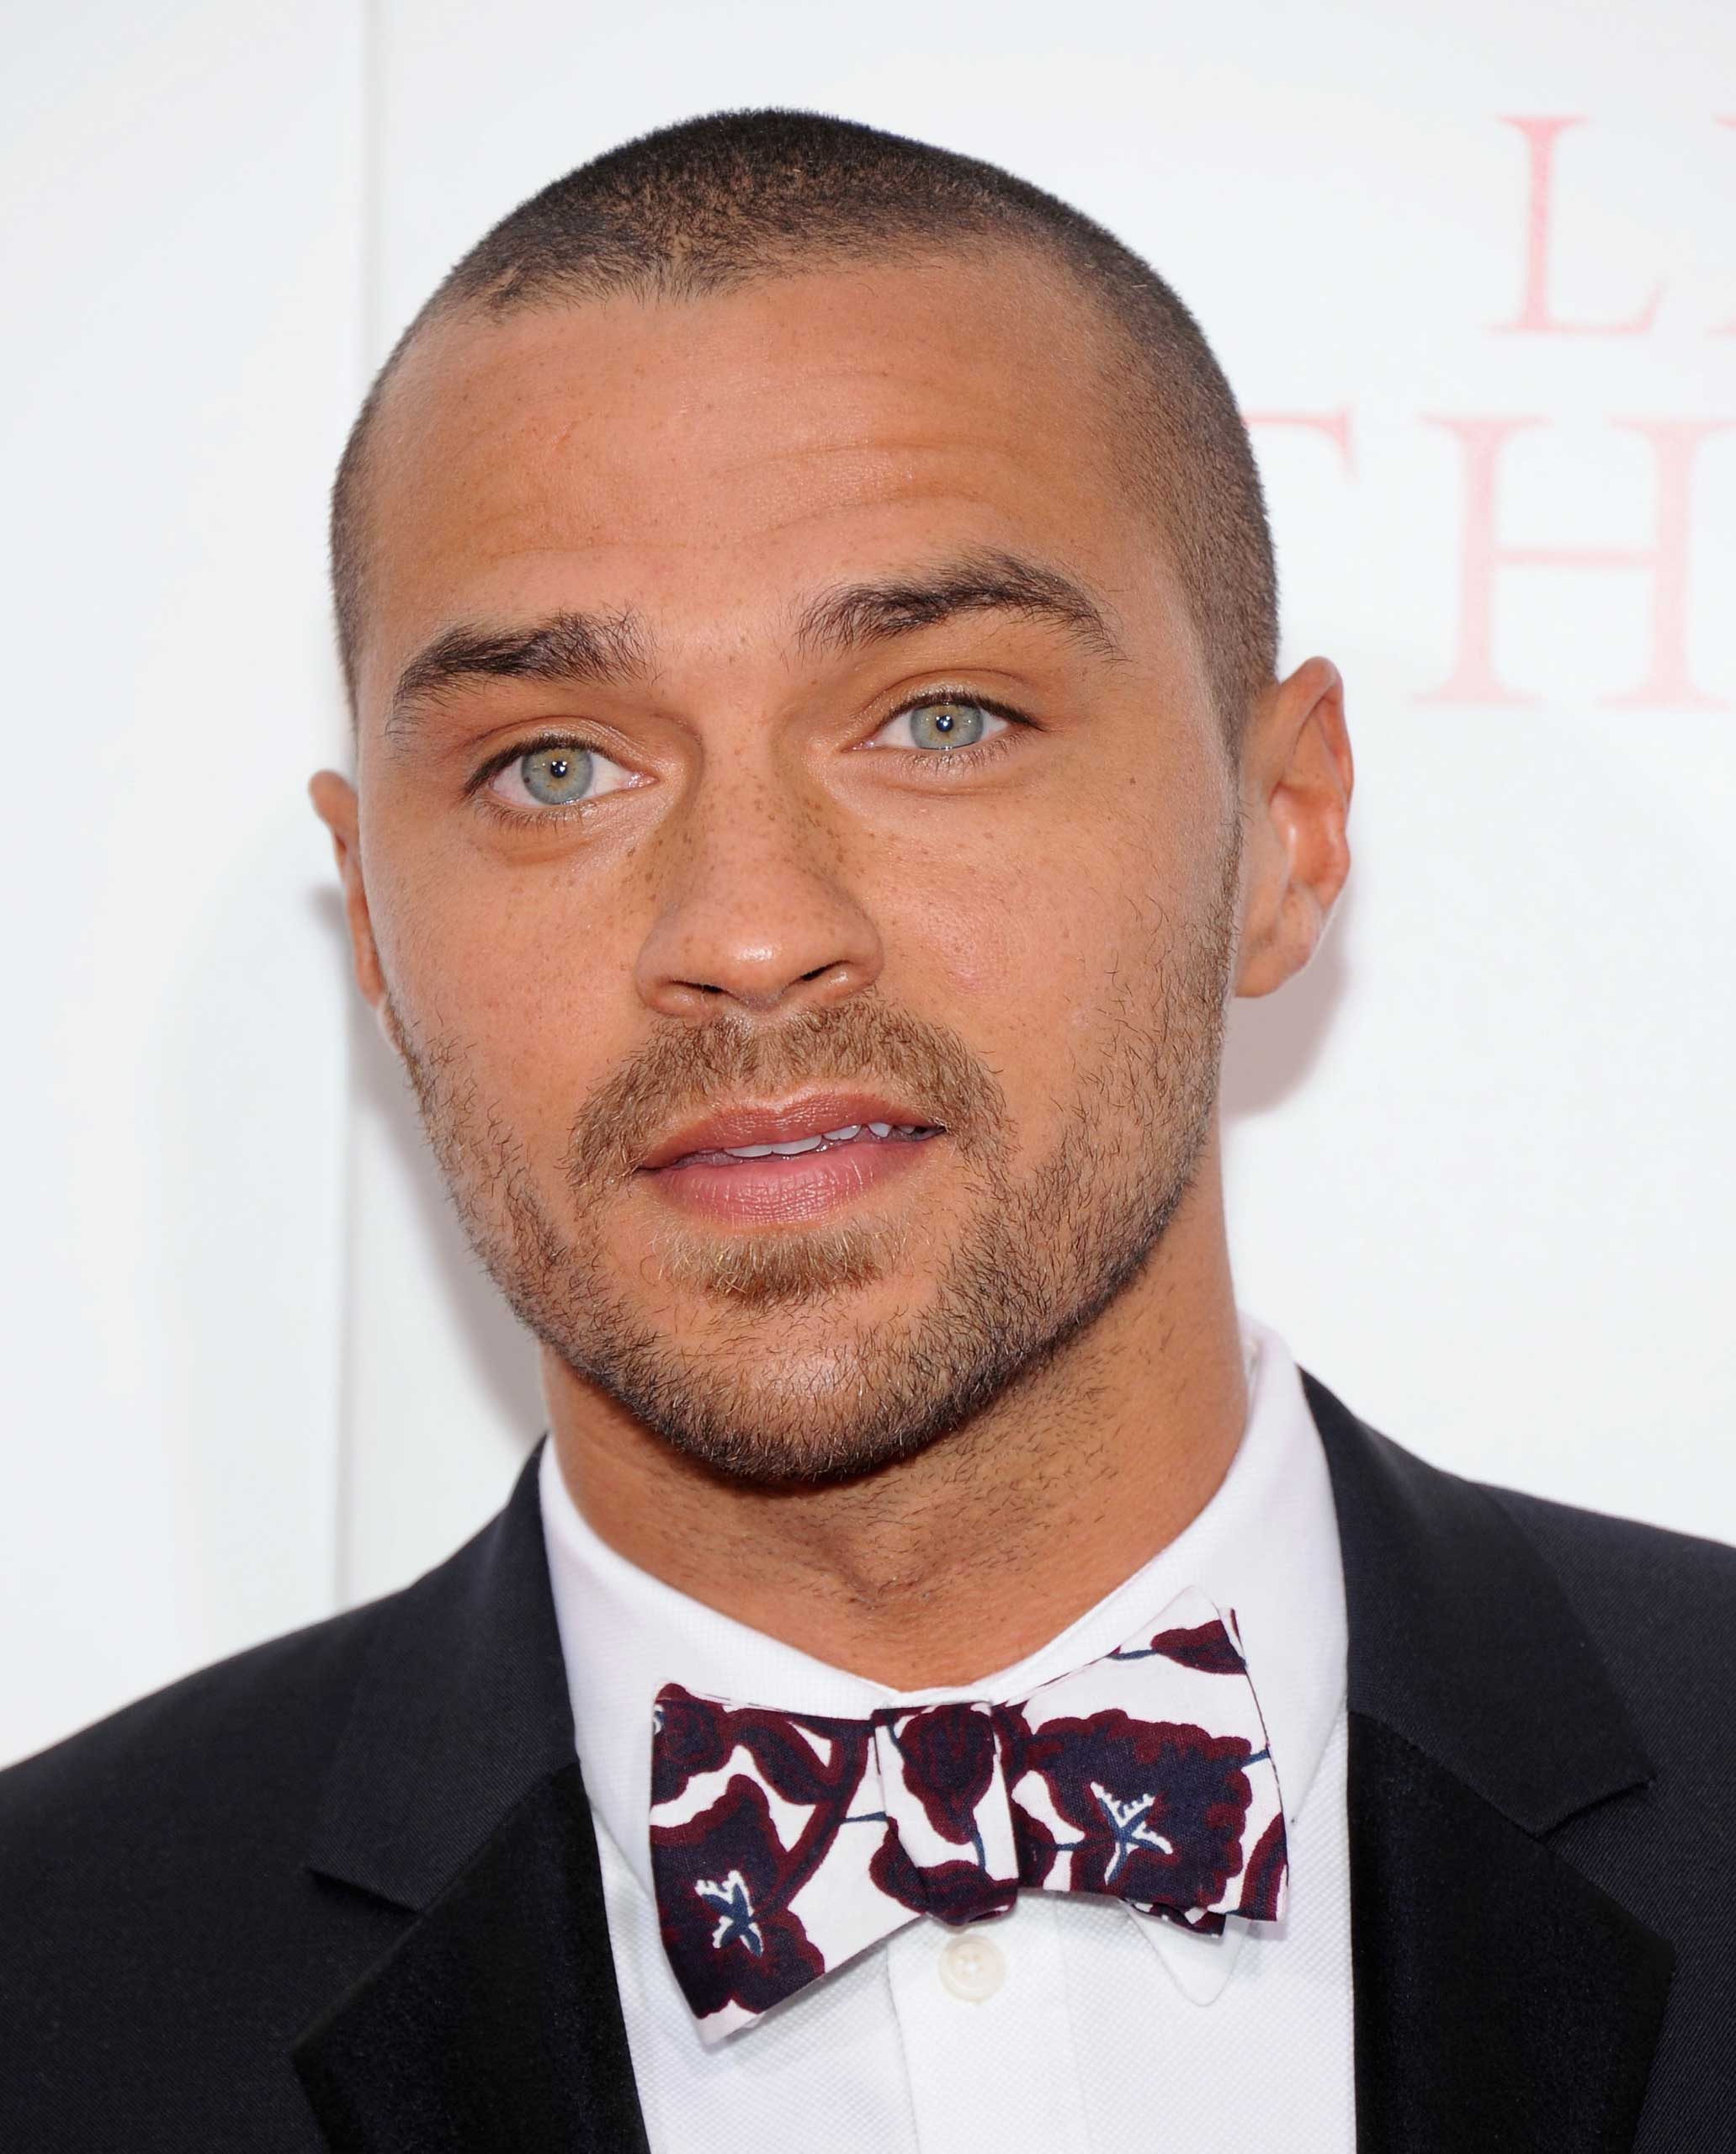 Actor Jesse Williams in New York in 2013.